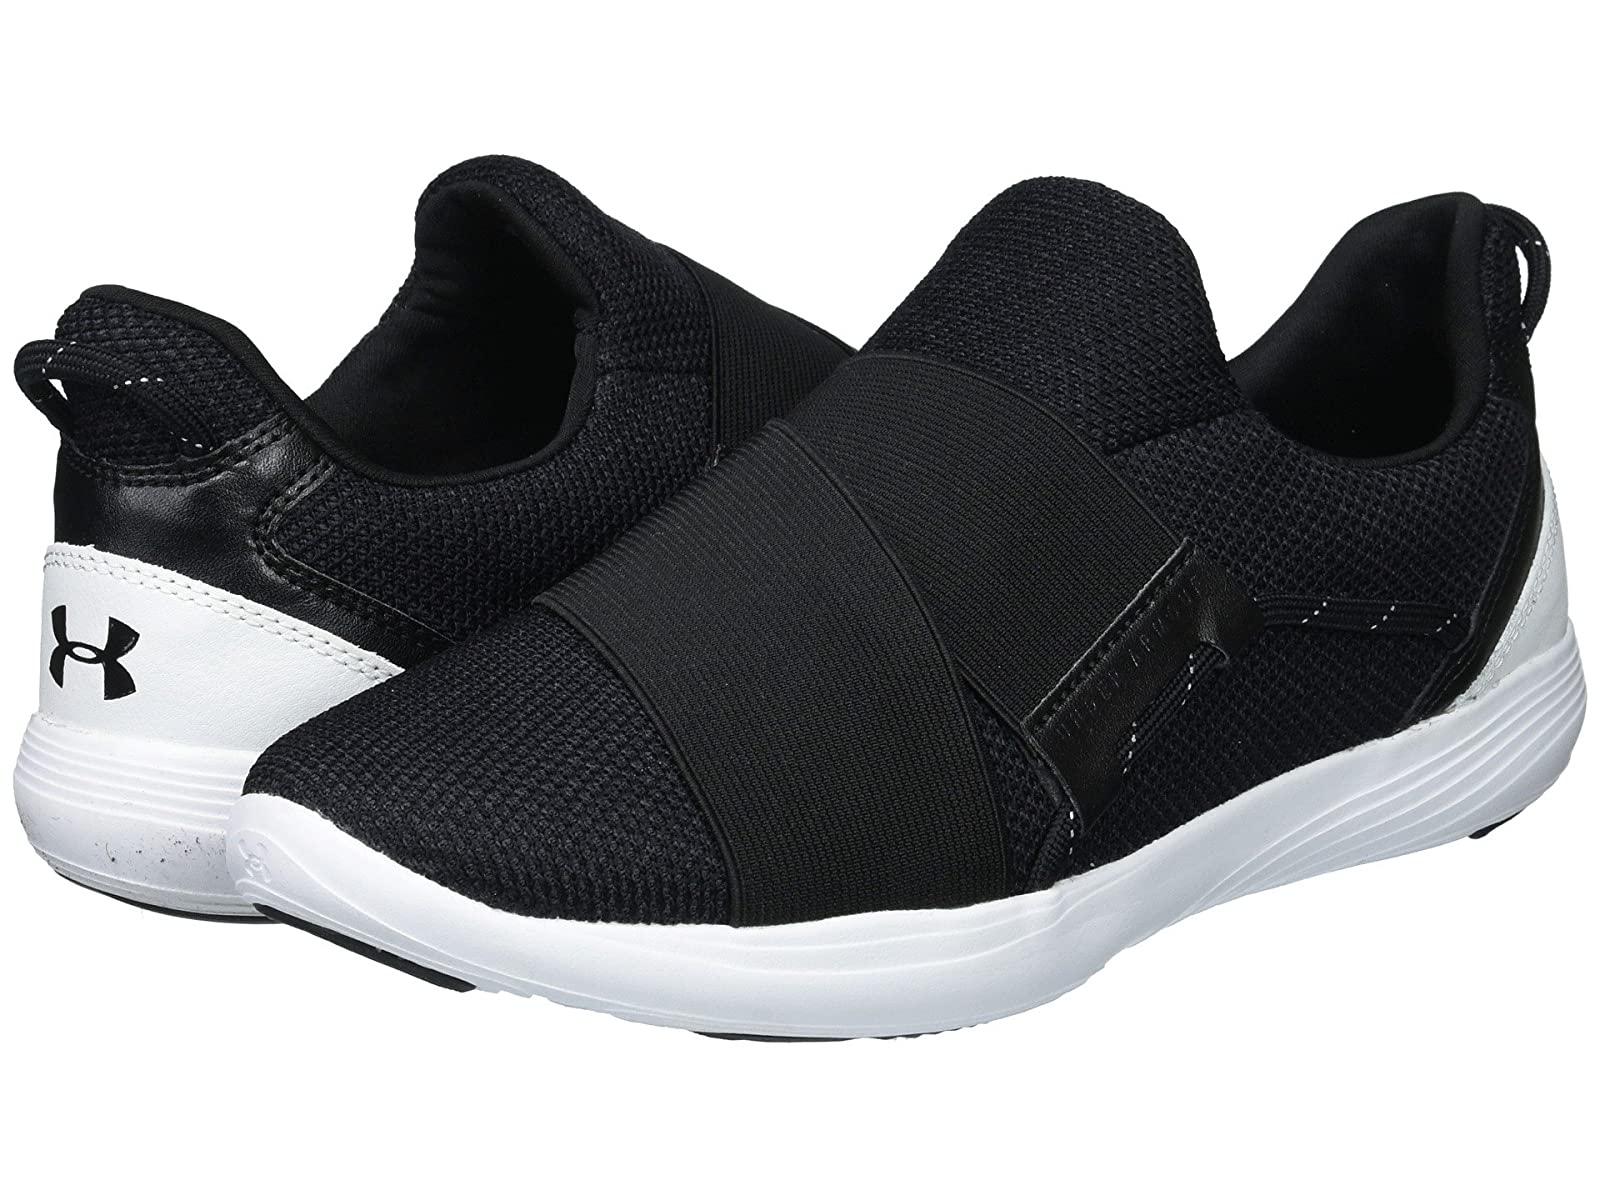 Under Armour UA Precision XCheap and distinctive eye-catching shoes